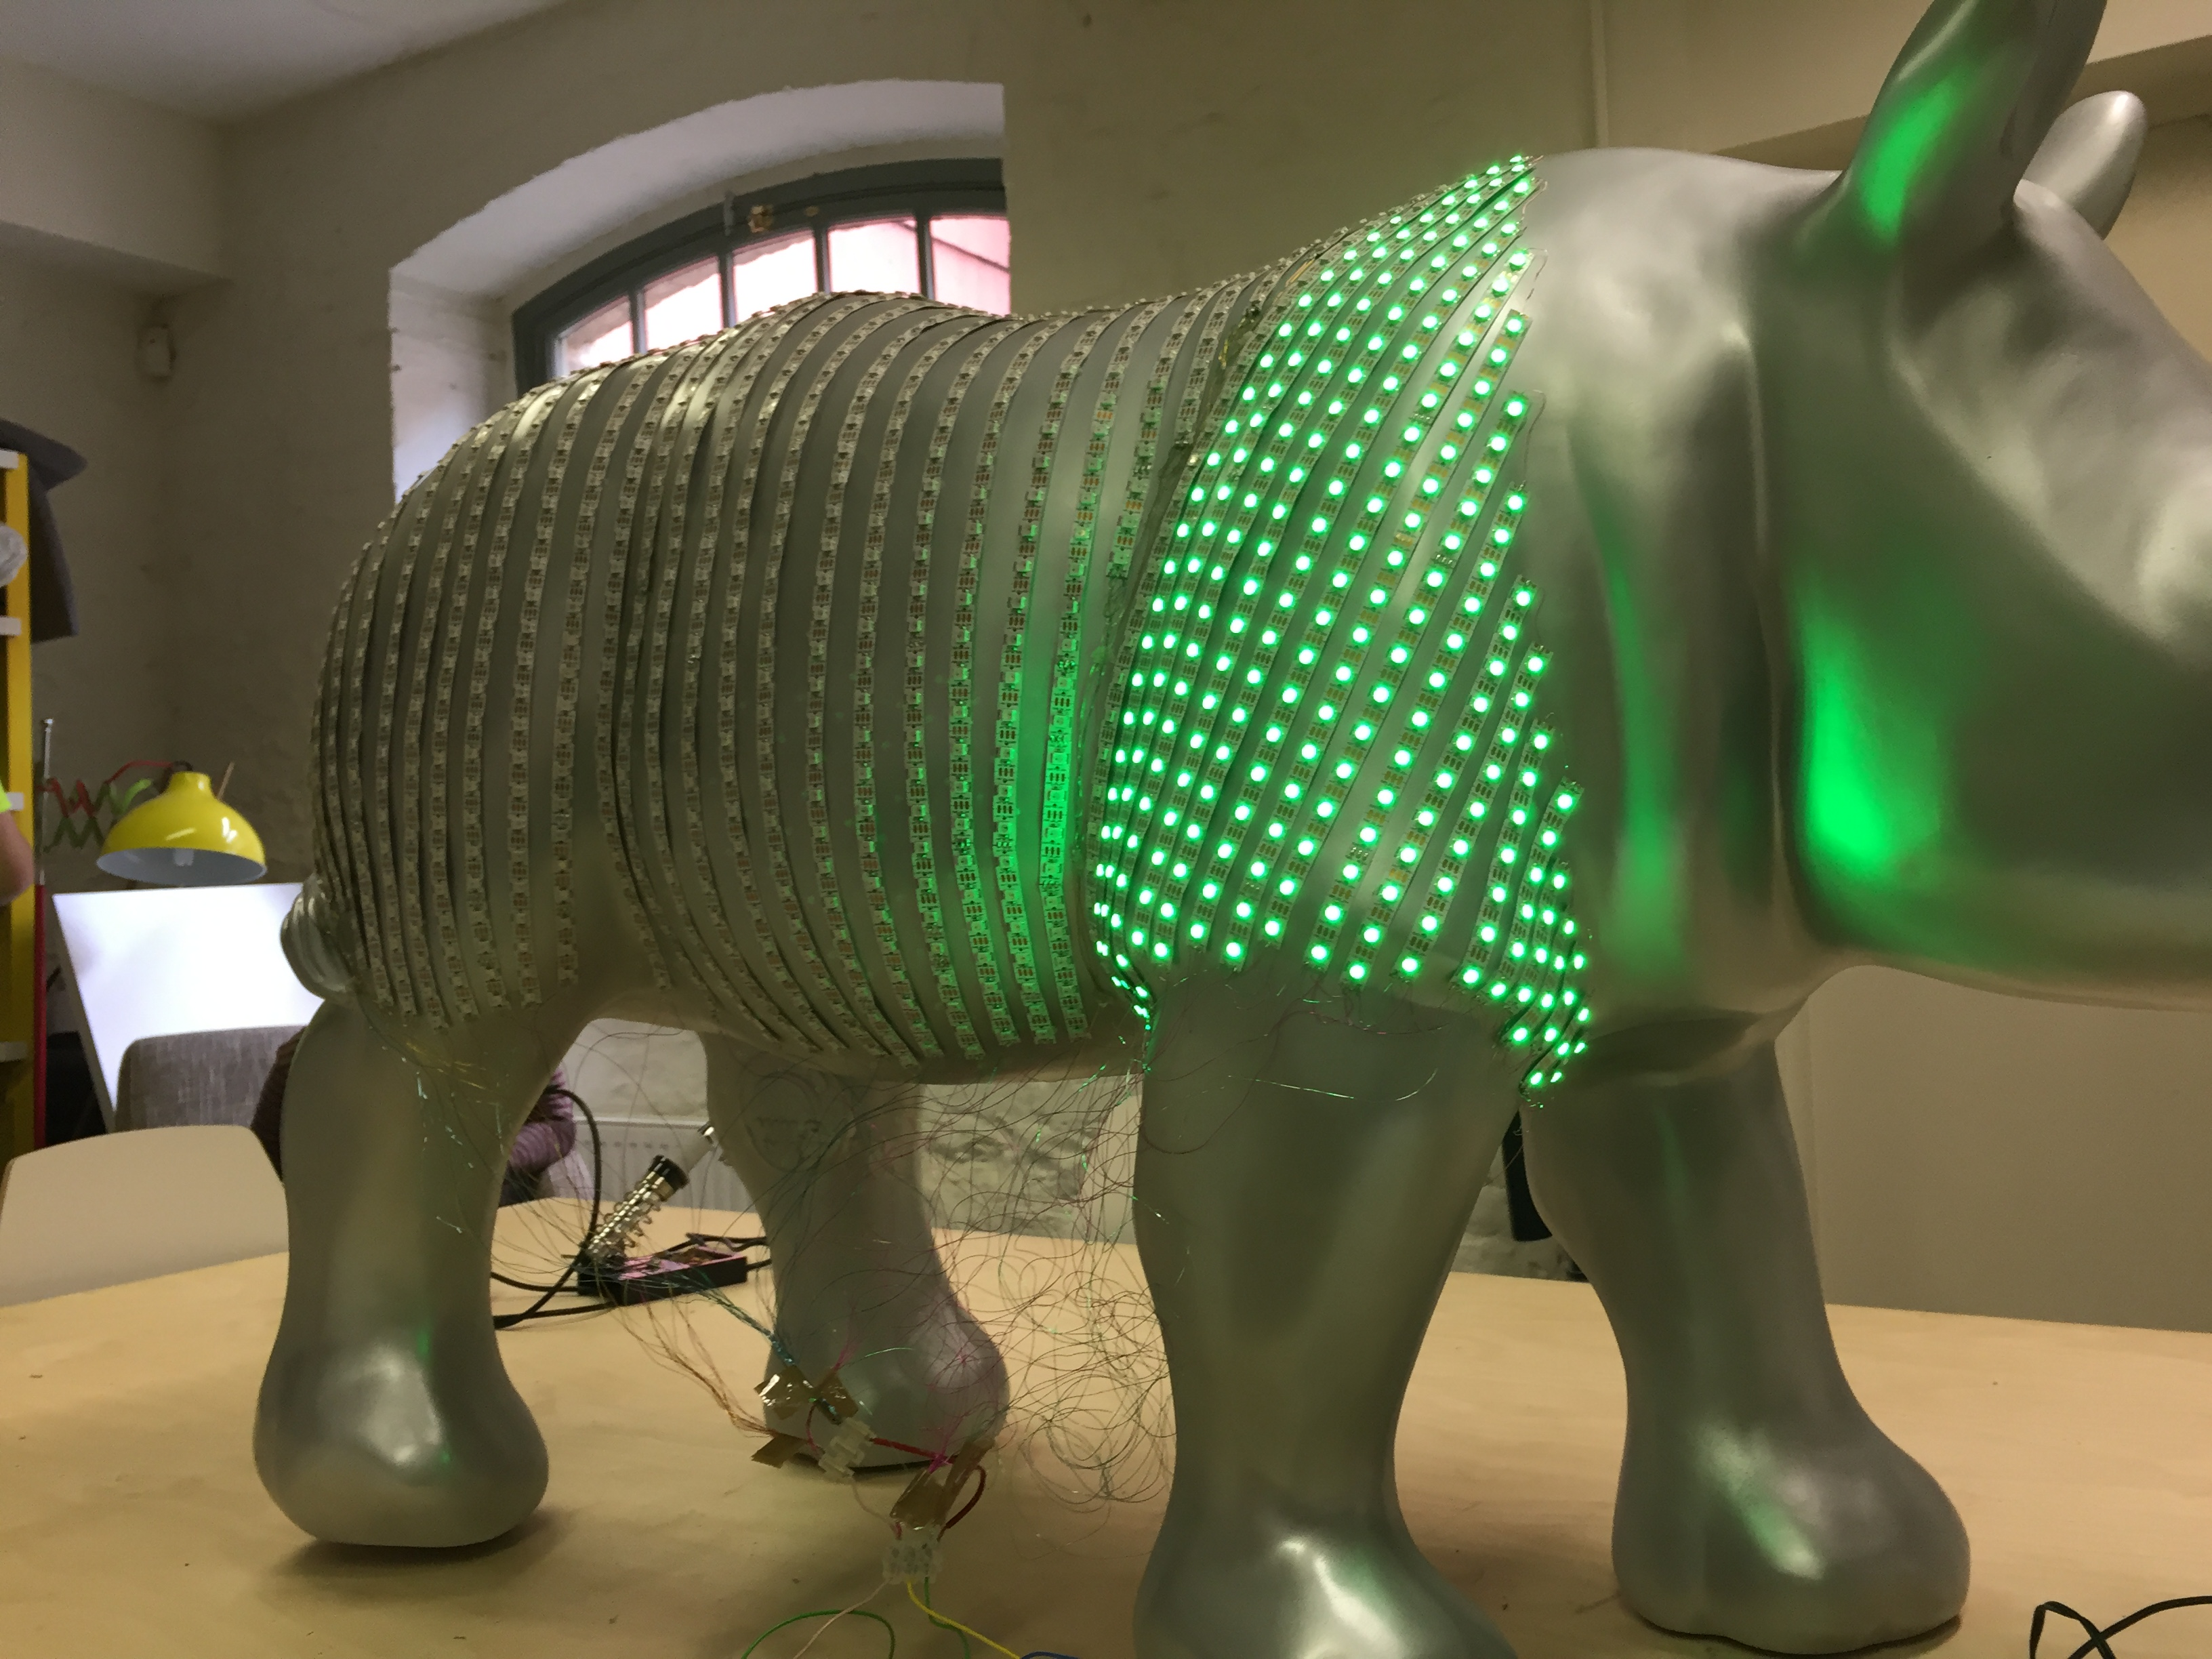 Image2: Testing LEDs on the body of the rhino